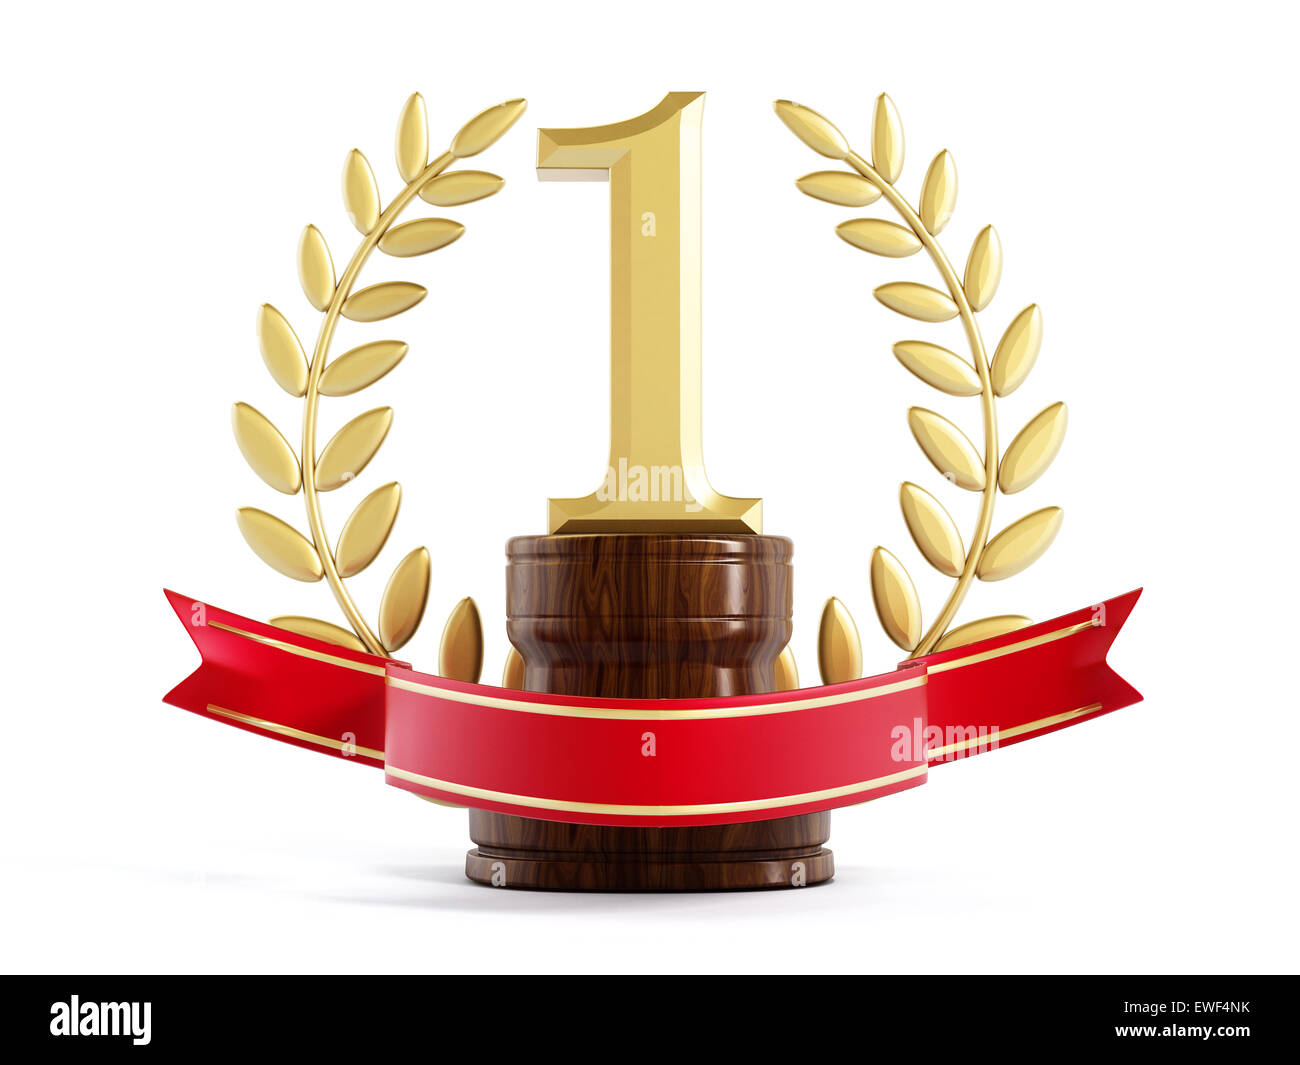 1st Prize Trophy High Resolution Stock Photography and Images - Alamy